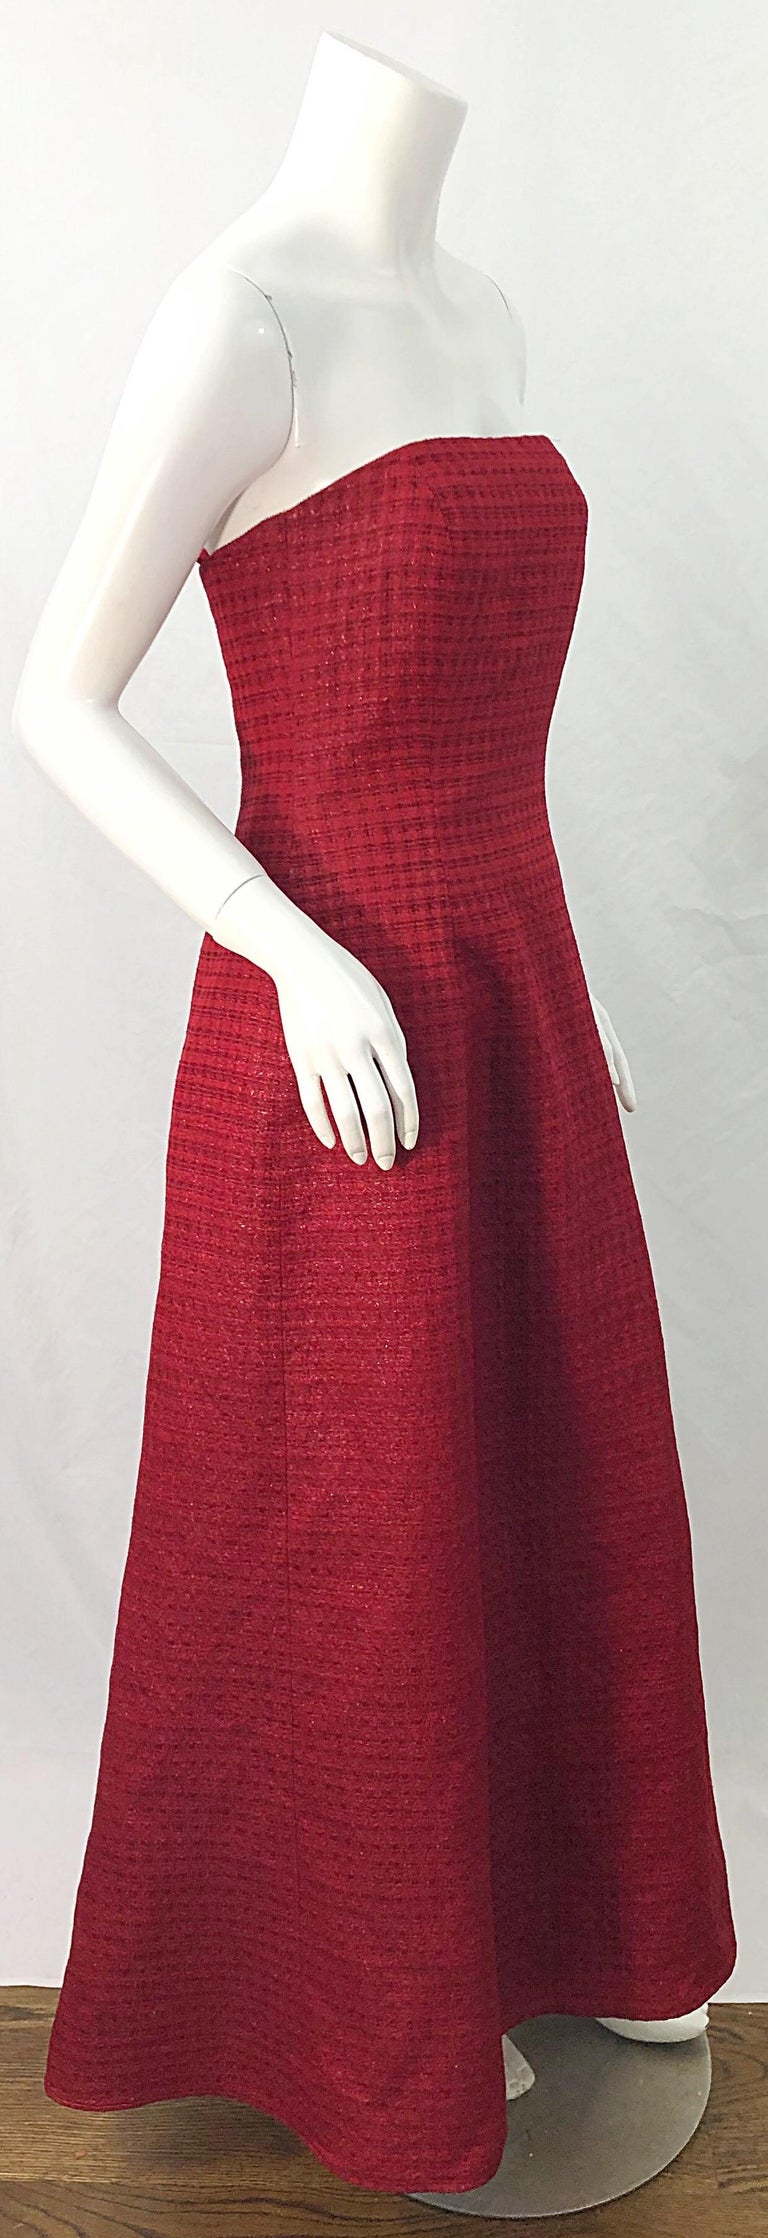 1990s Louis Feraud Cranberry Red Strapless Vintage 90s Silk + Wool Gown Dress For Sale 7